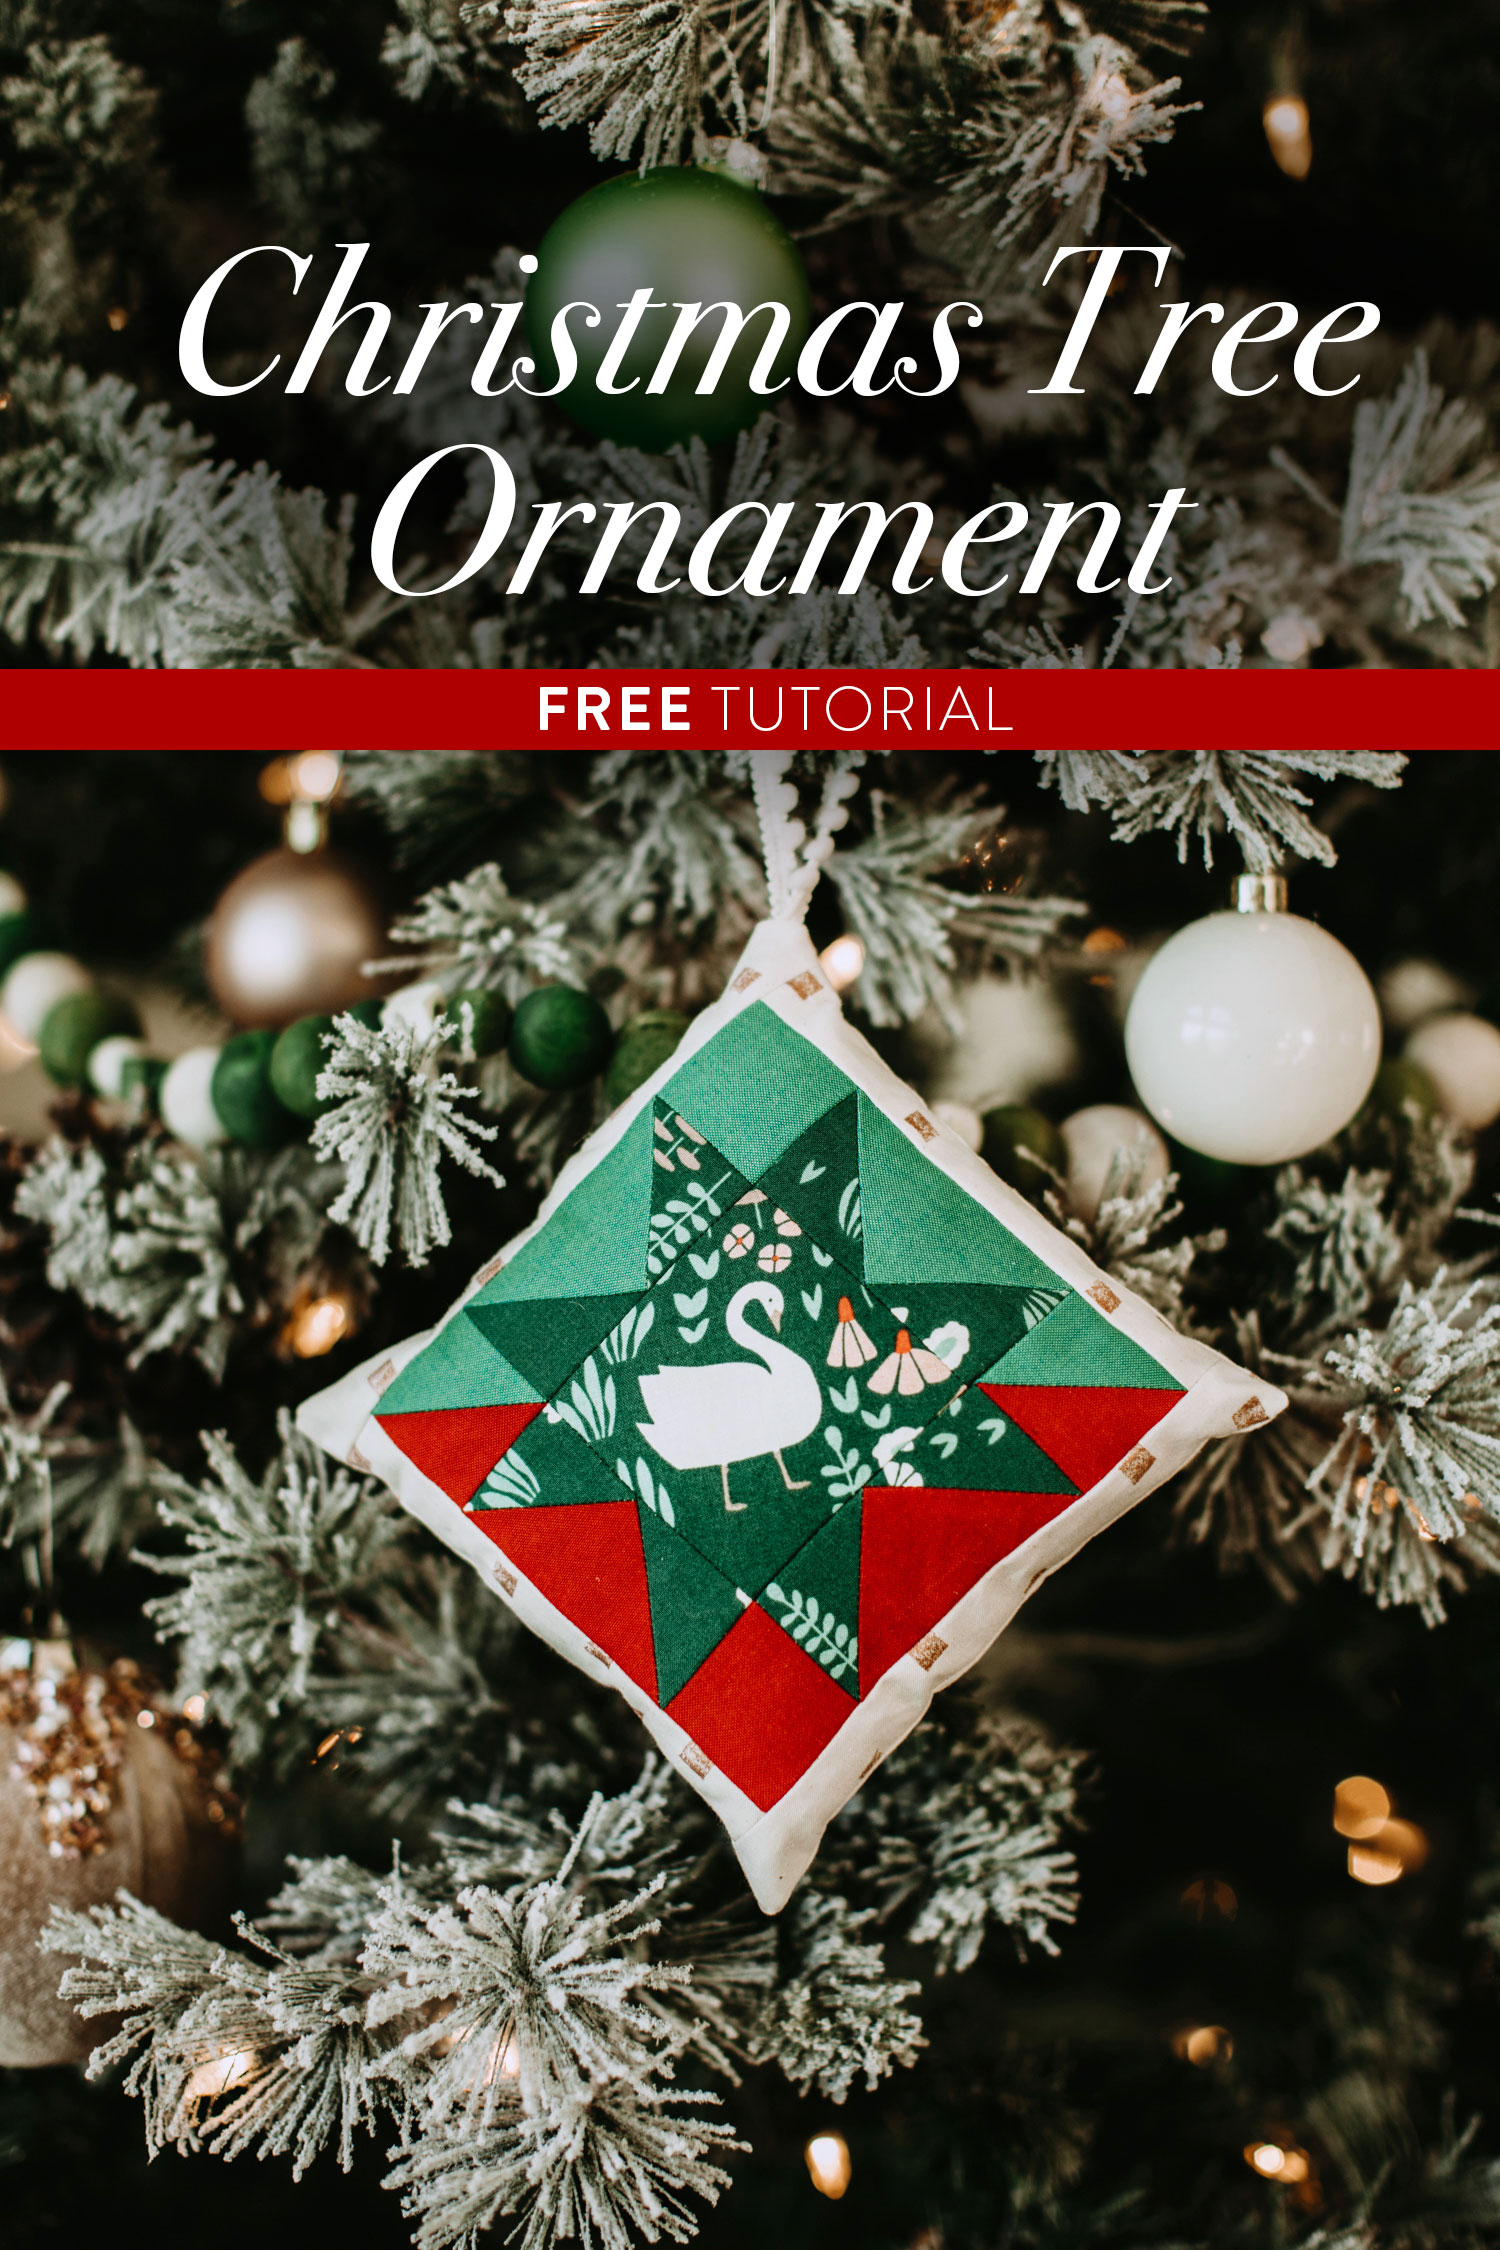 This Christmas Tree Ornament Tutorial walks you through an easy DIY project based on the Stars Hollow Quilt pattern by Suzy Quilts | suzyquilts.com #christmasornament #DIYornament